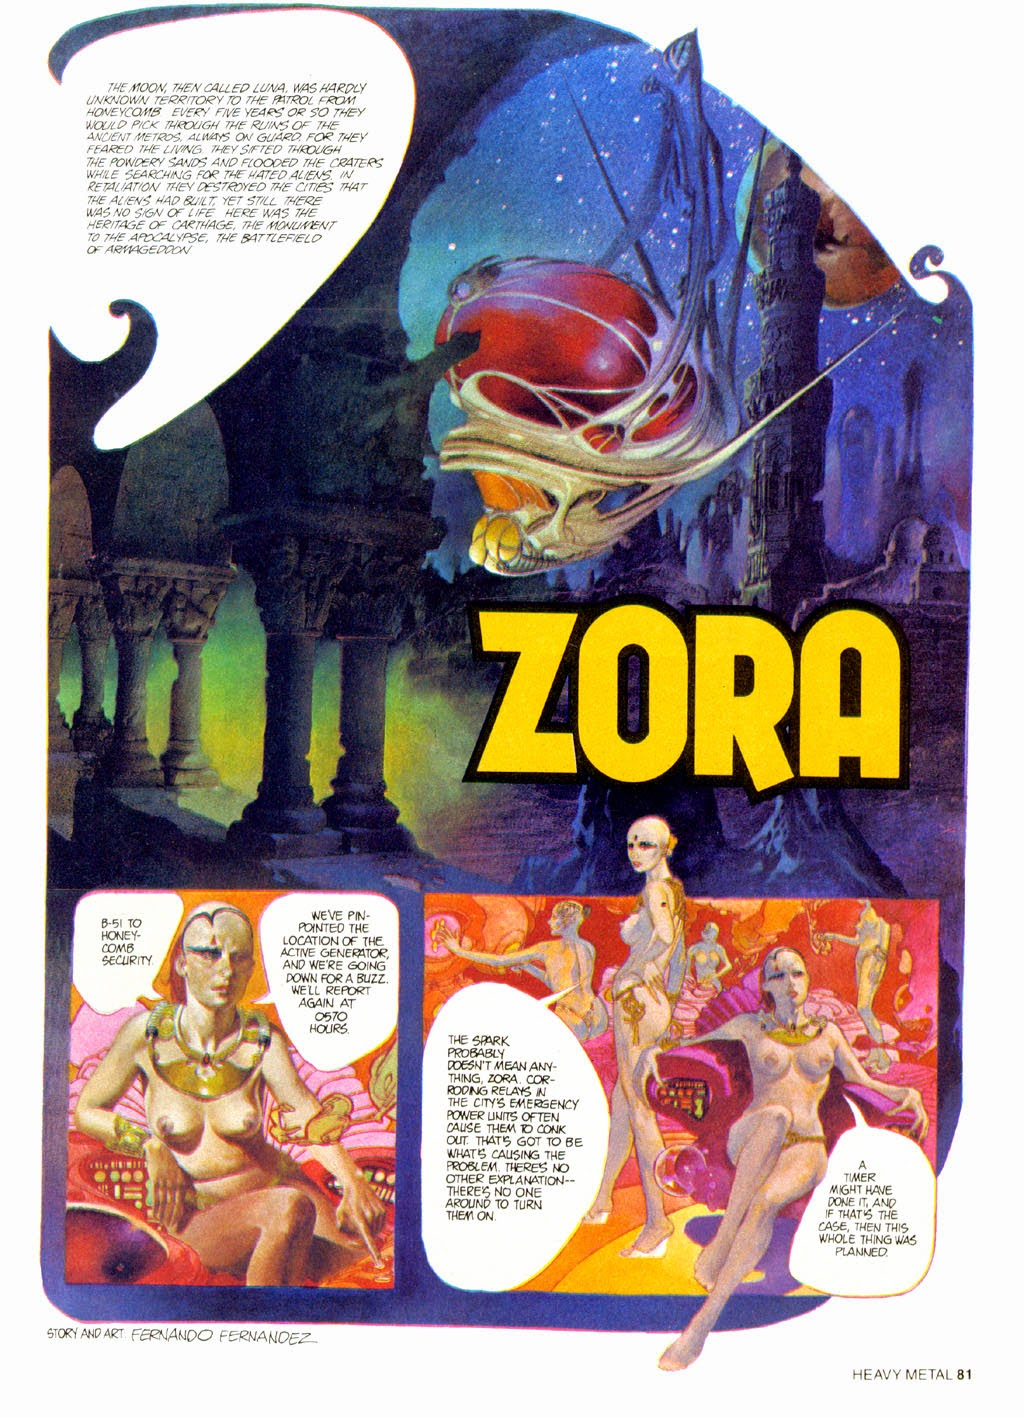 The Bronze Age Of Blogs Zora Hi Hansithe Codes Do Point To An Electrical Problem With Transfer And What Will Occur Between Her Them By Fourth But That Doesnt Matter It Really Is All About Visuals Theyre Gorgeous